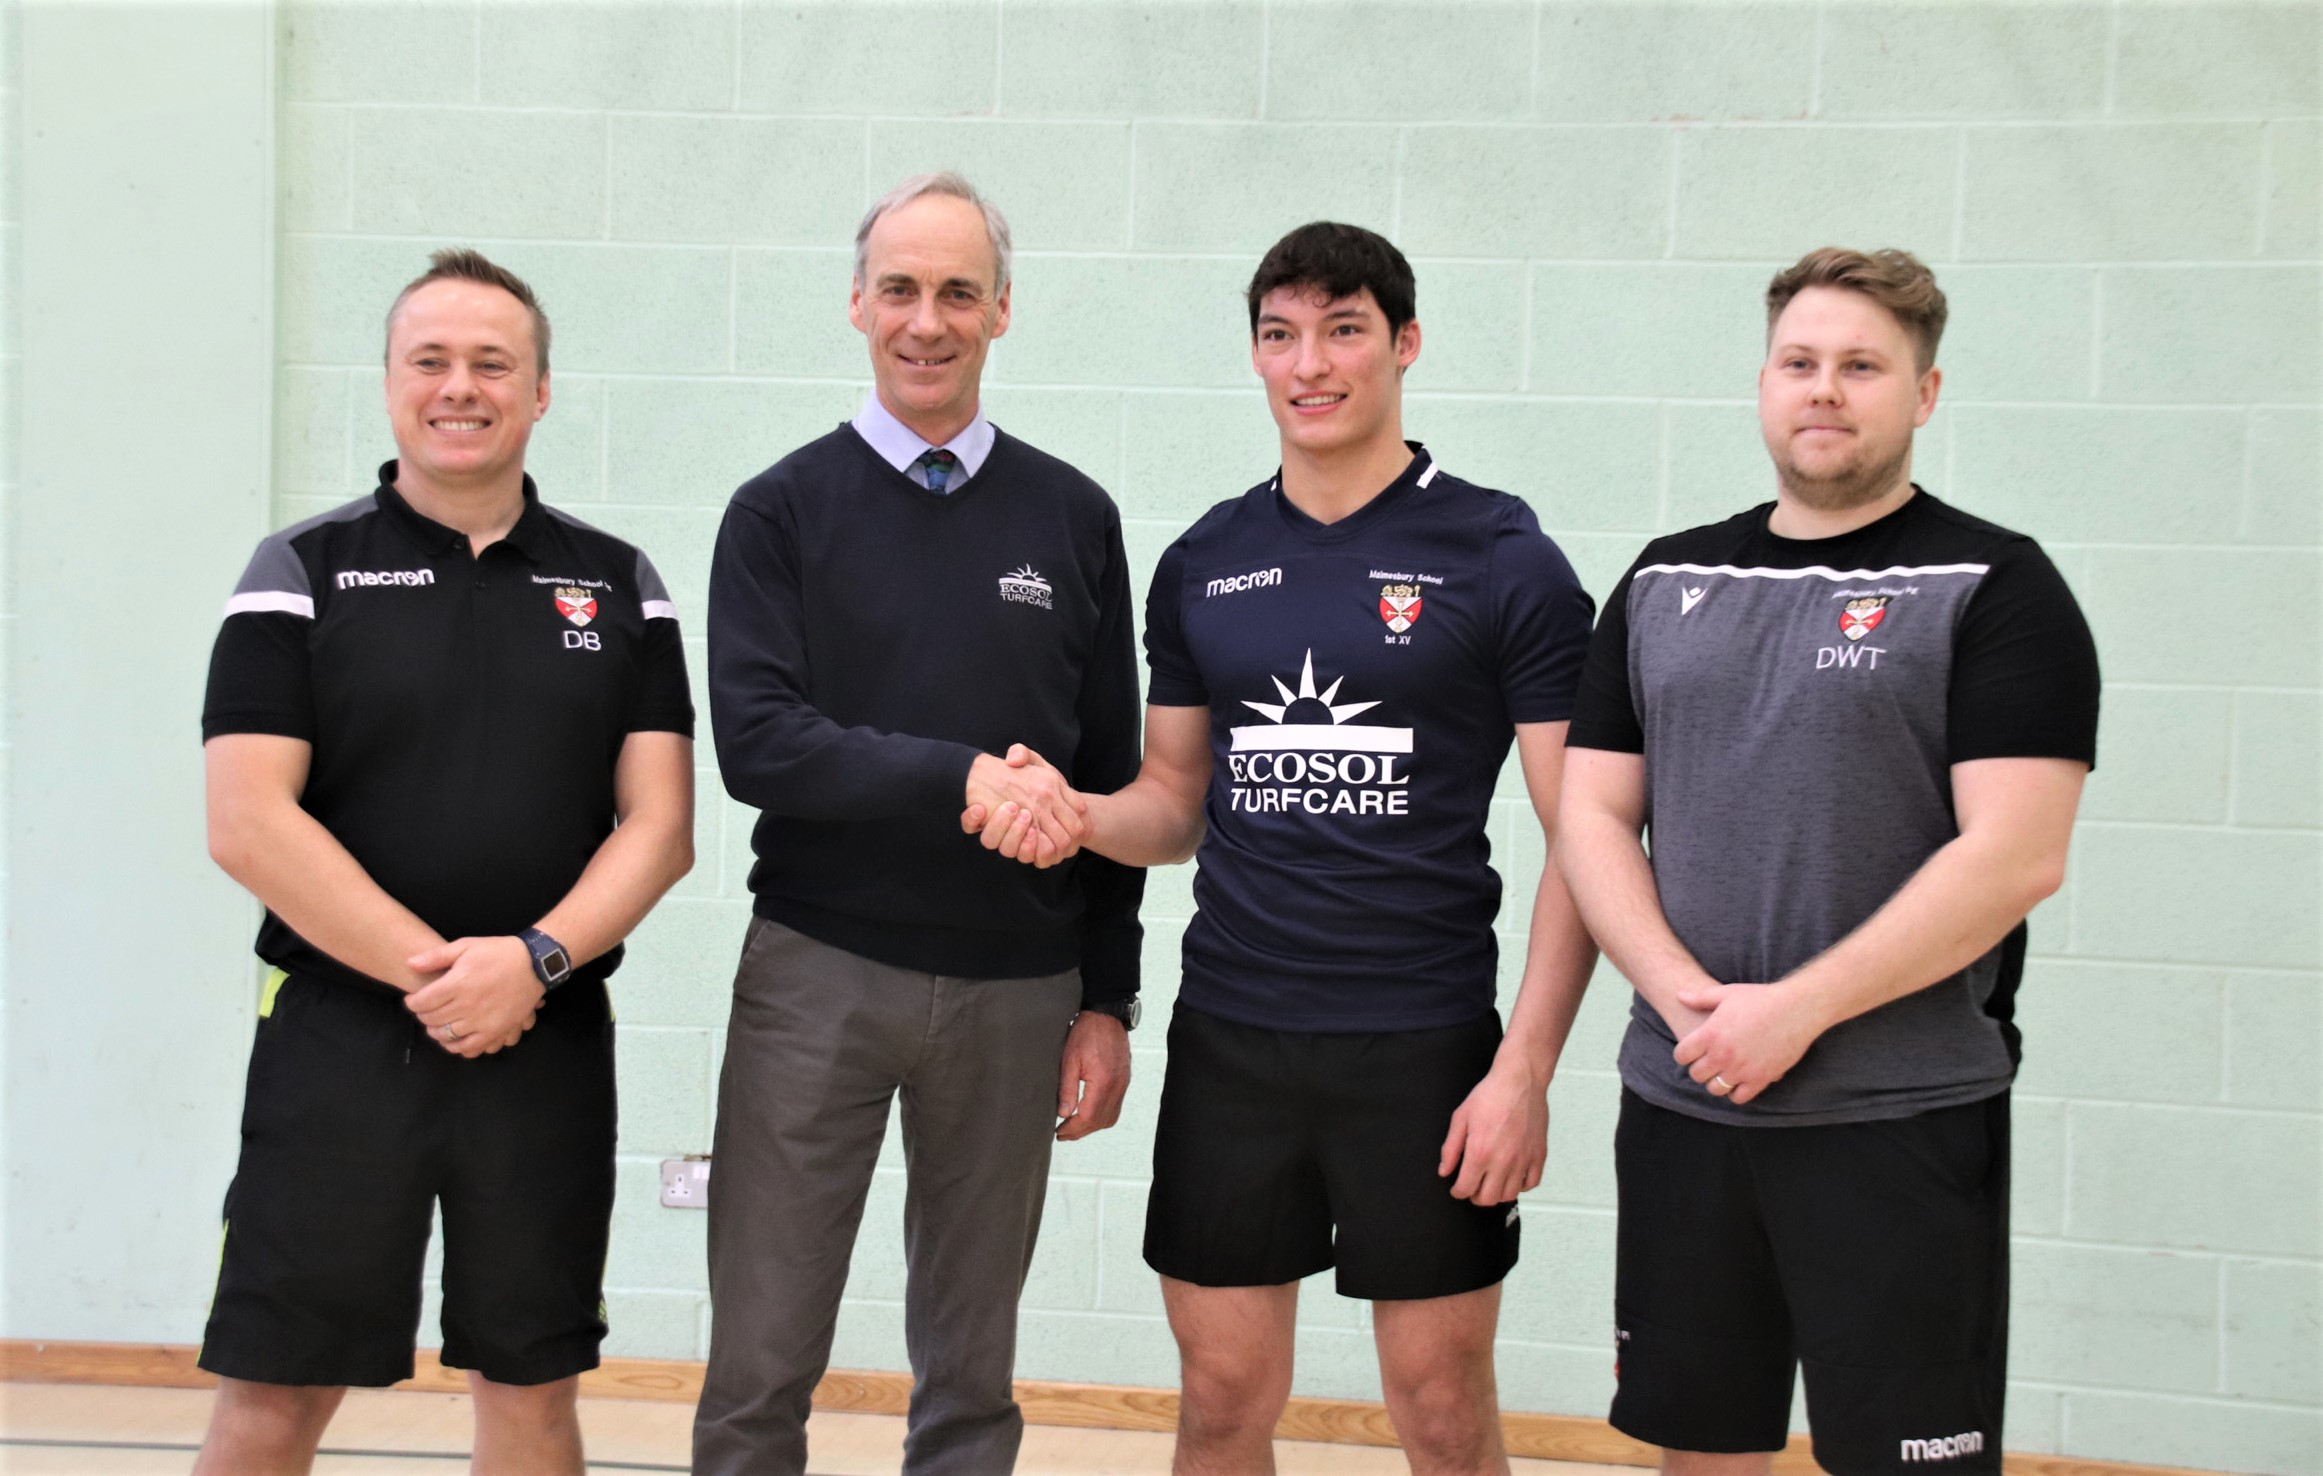 Ecosol Turfcare supports youth rugby